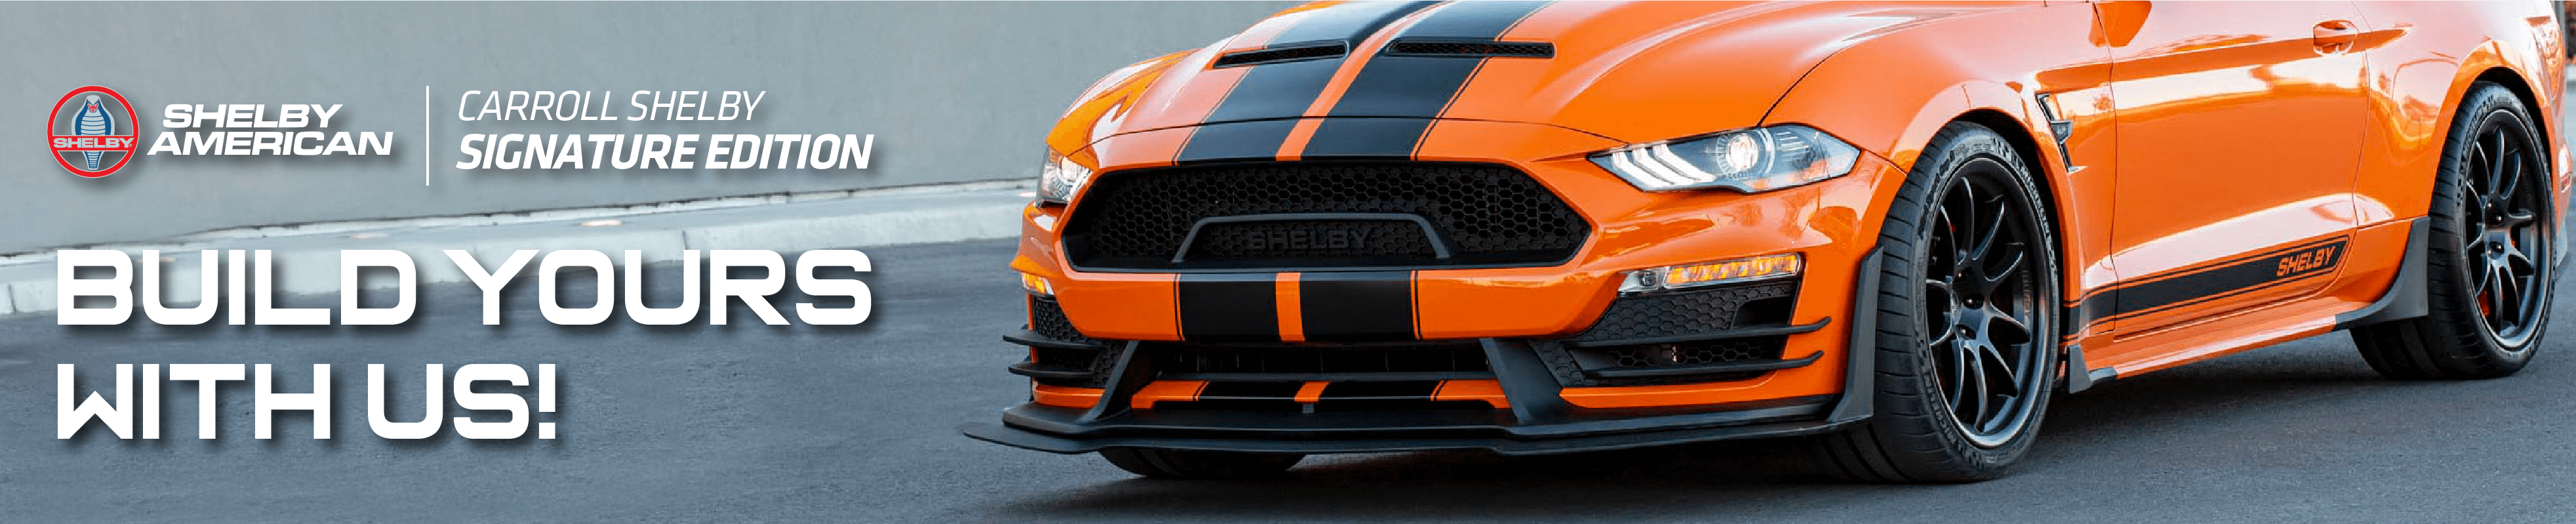 Build Your Carroll Shelby Signature Edition at Bayfield Ford